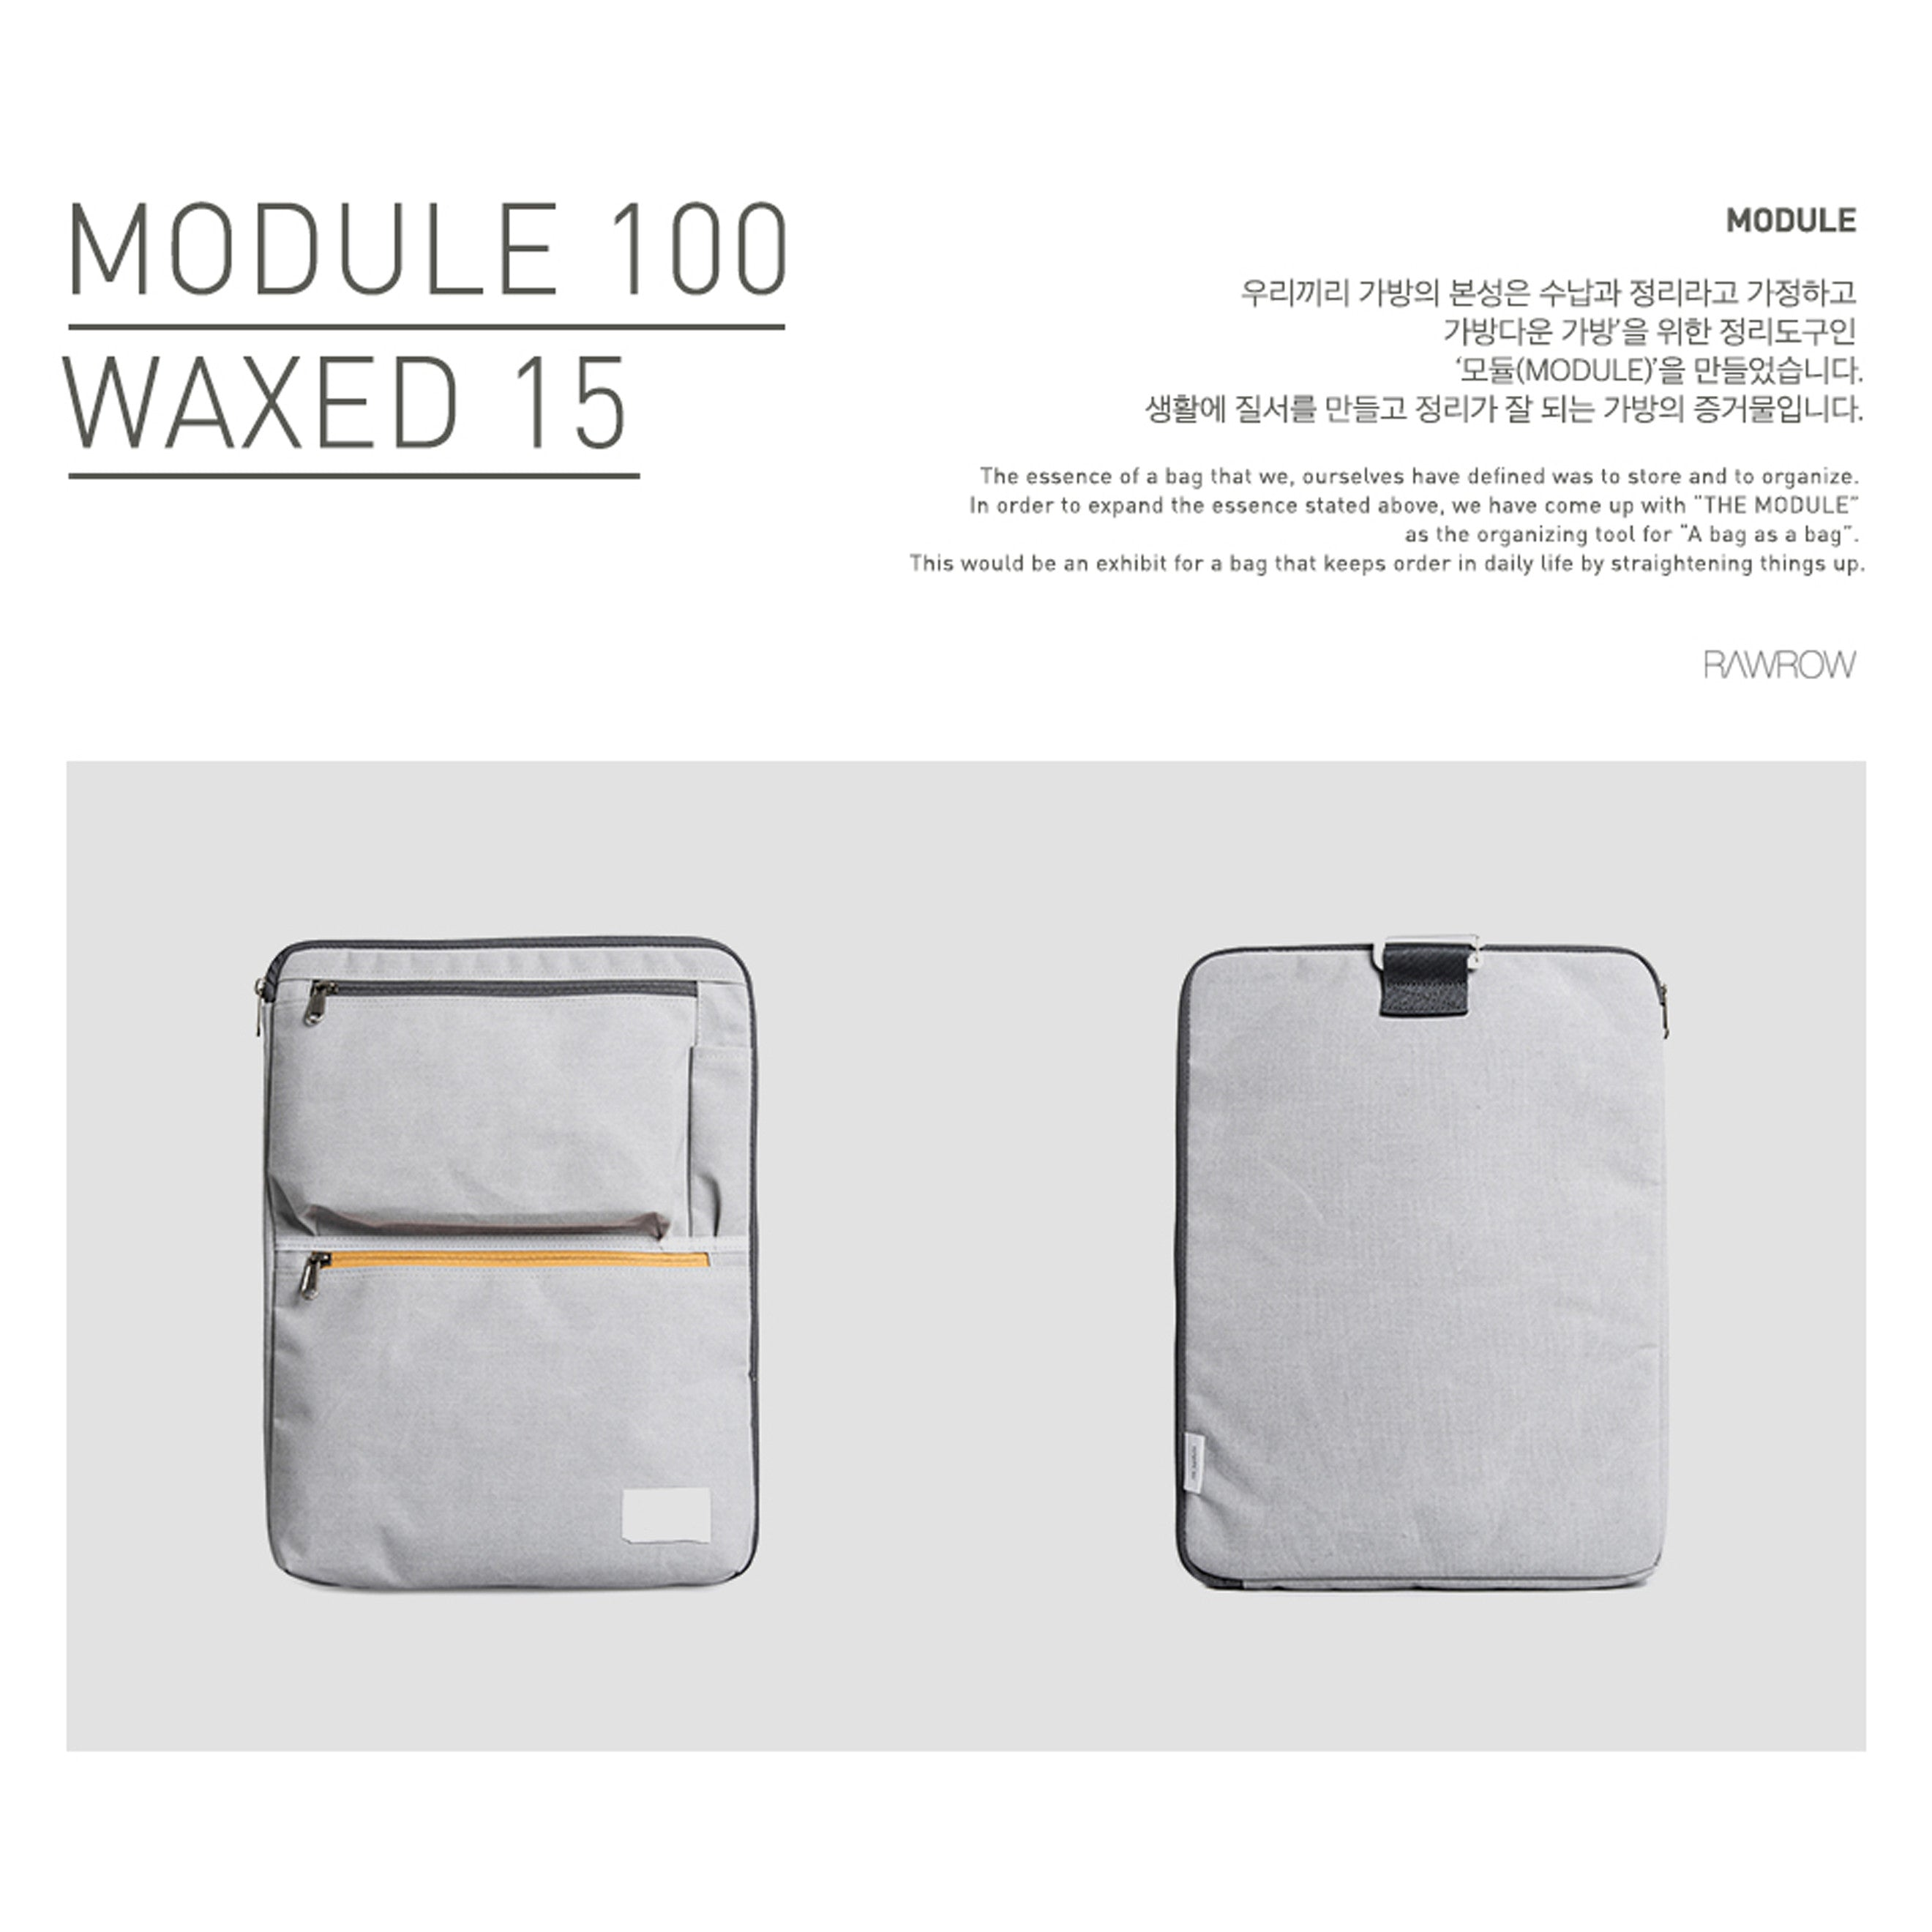 "'Module 100' Raw Waxed 15"" Gray"